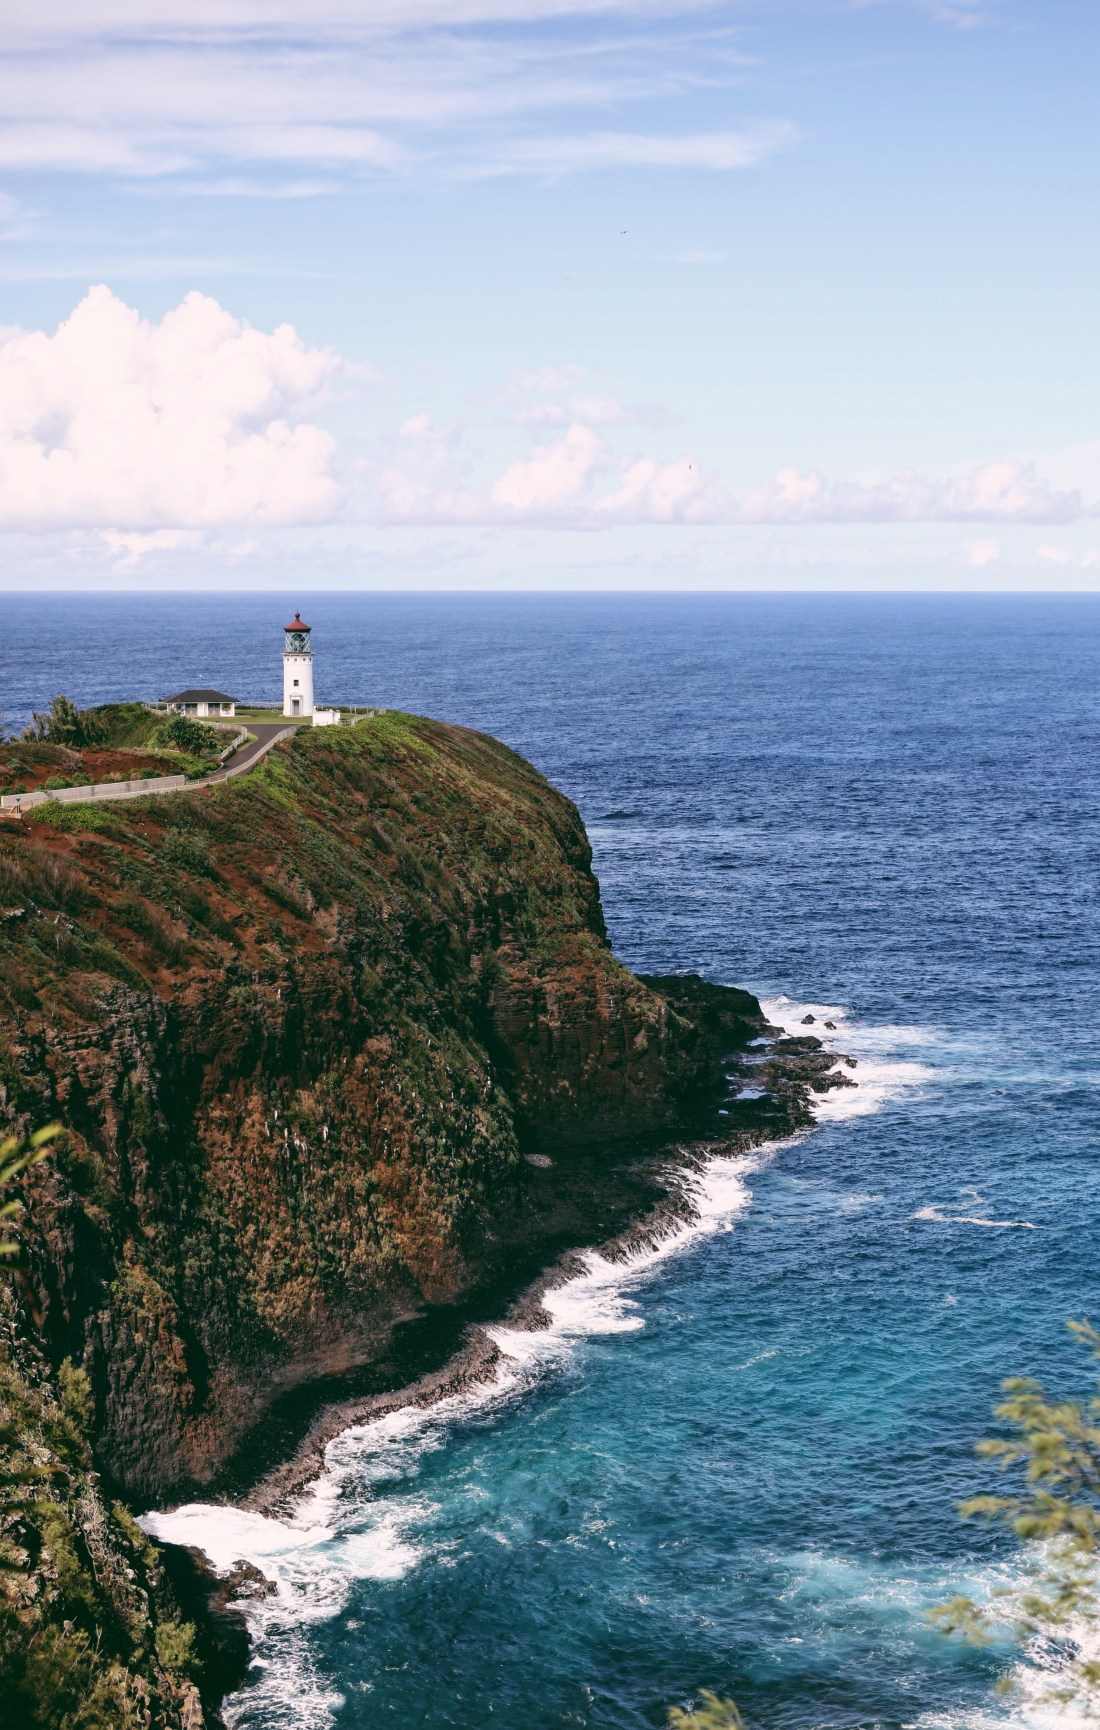 Travel Guide to Kauai, Hawaii | Kilauea Lighthouse | Travel Tips for Kauai | Packing List for Kauai | Helpful Tips for Traveling to Kauai | Kauai Travel Guide | Hawaii Travel Guide | Why You Should Visit Hawaii | Napali Coast Boat Excursion | Activities To Do in Kauai | Best Vacation Places in the World via @elanaloo + elanaloo.com